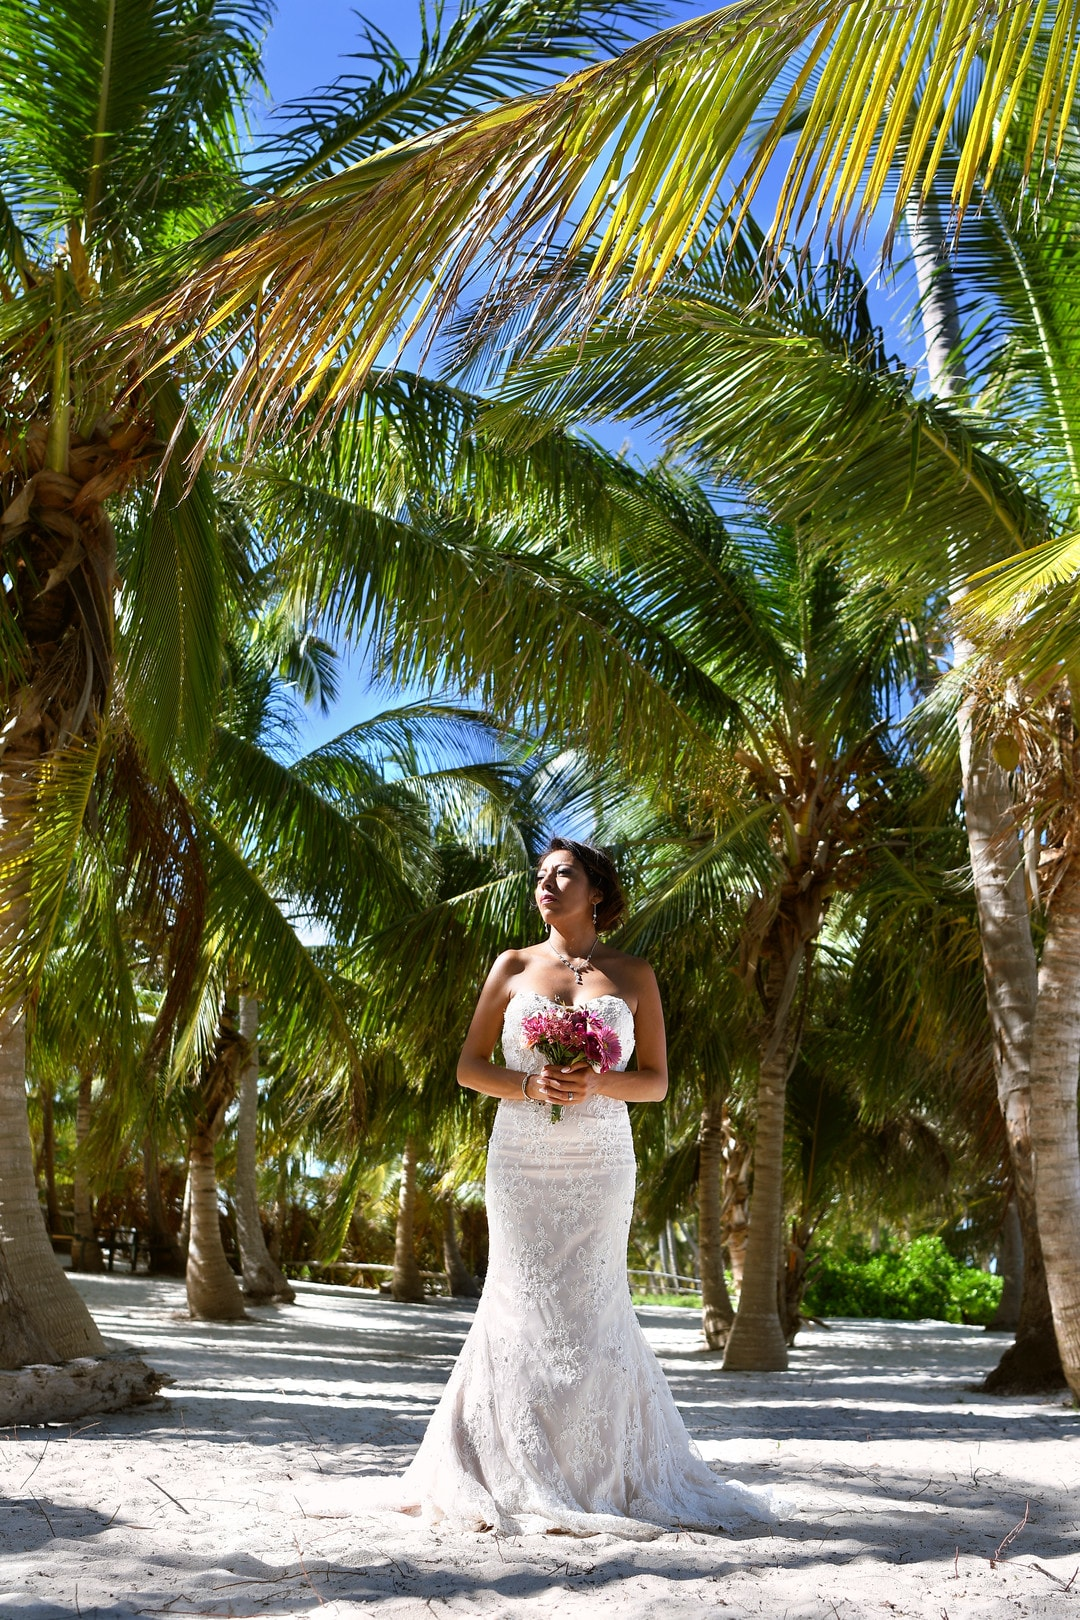 Carla & Roscoe's Elopement In Punta Cana, Dominican Republic, Photography by Milan Photo Cine Art for Destination Wedding network Adriana Weddings